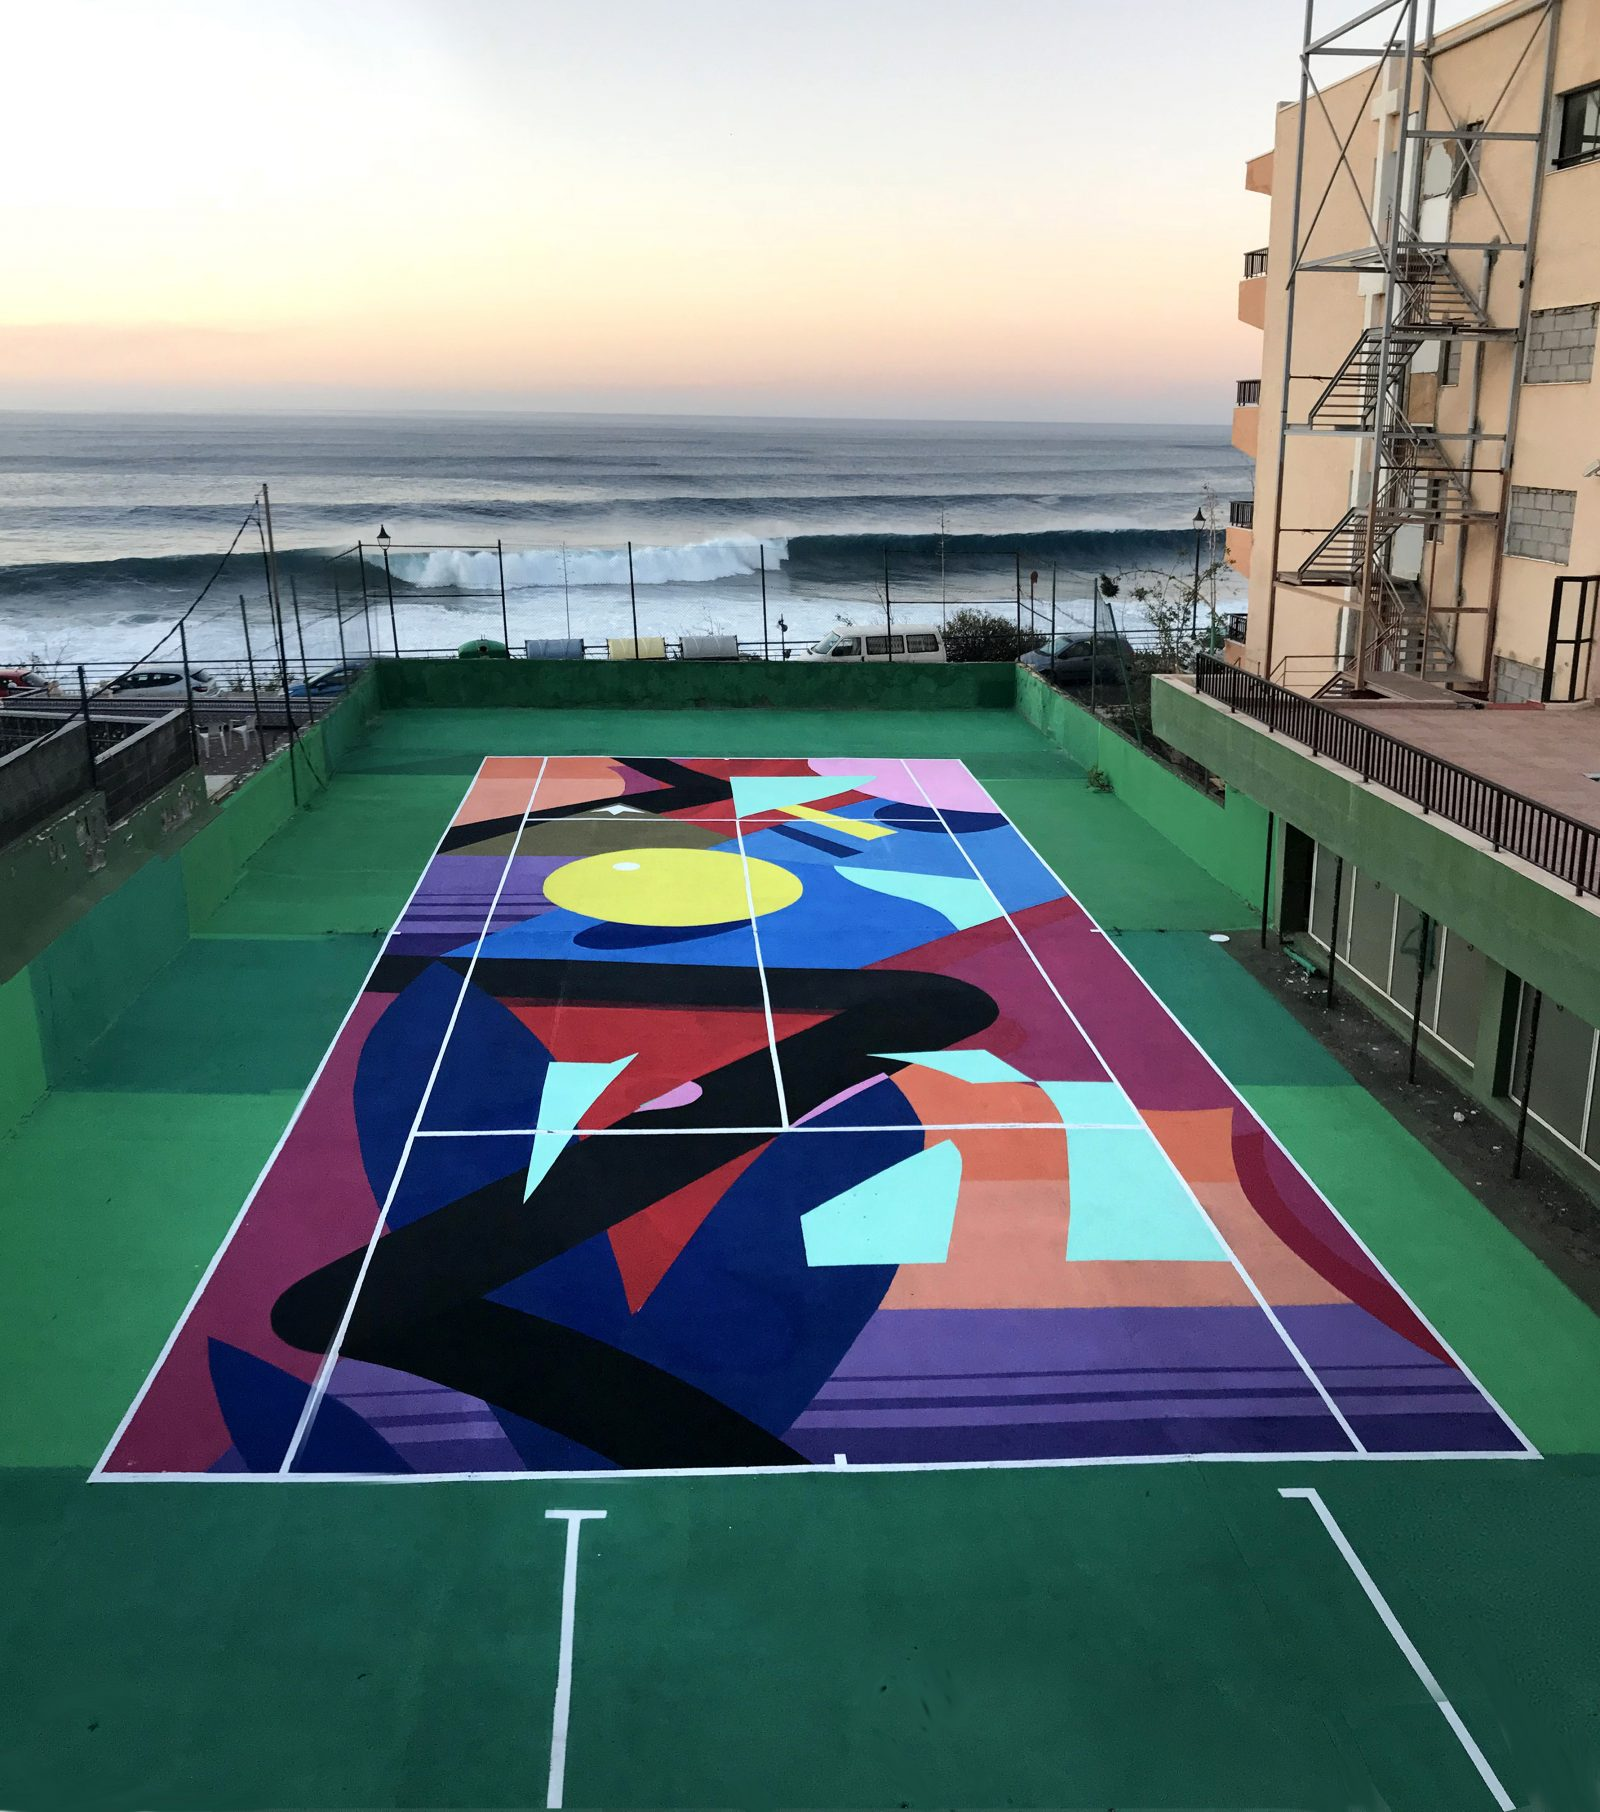 canchaiker muro - sports courts 1